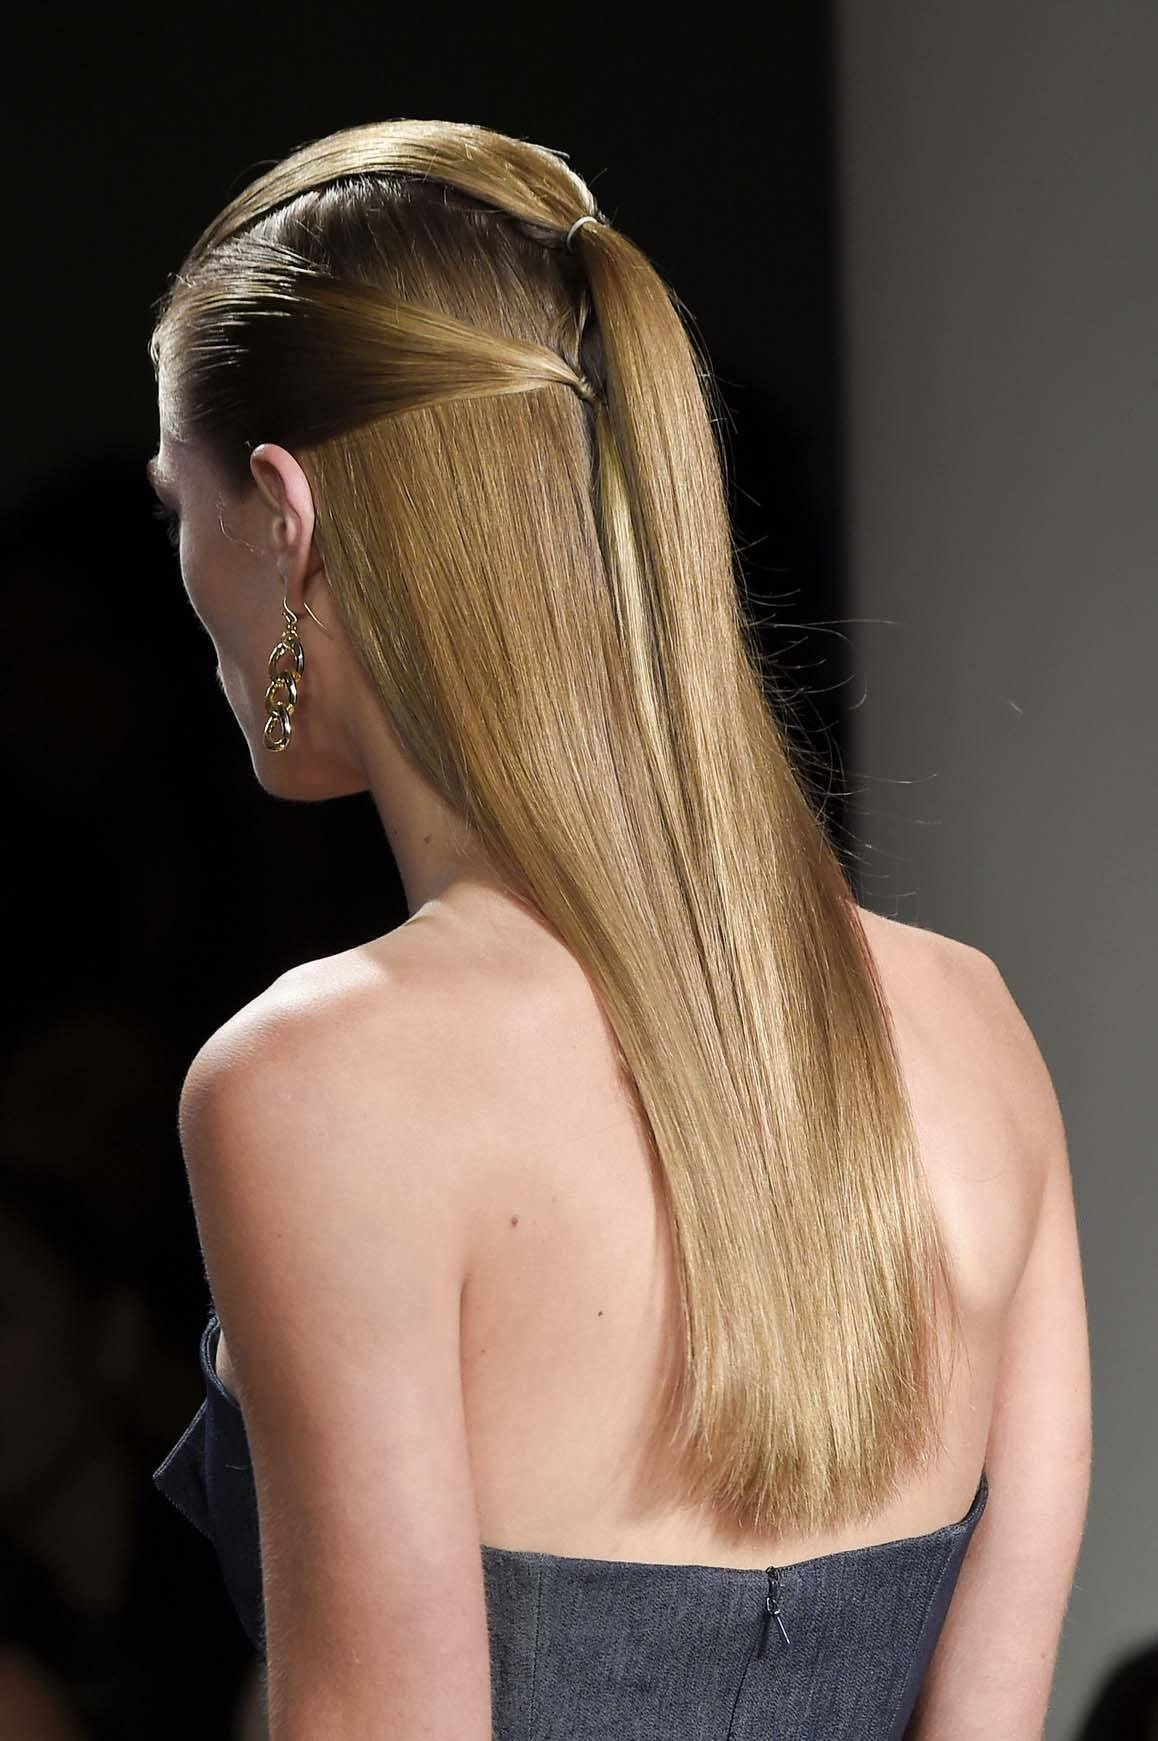 sleek hair trend with a half-up look